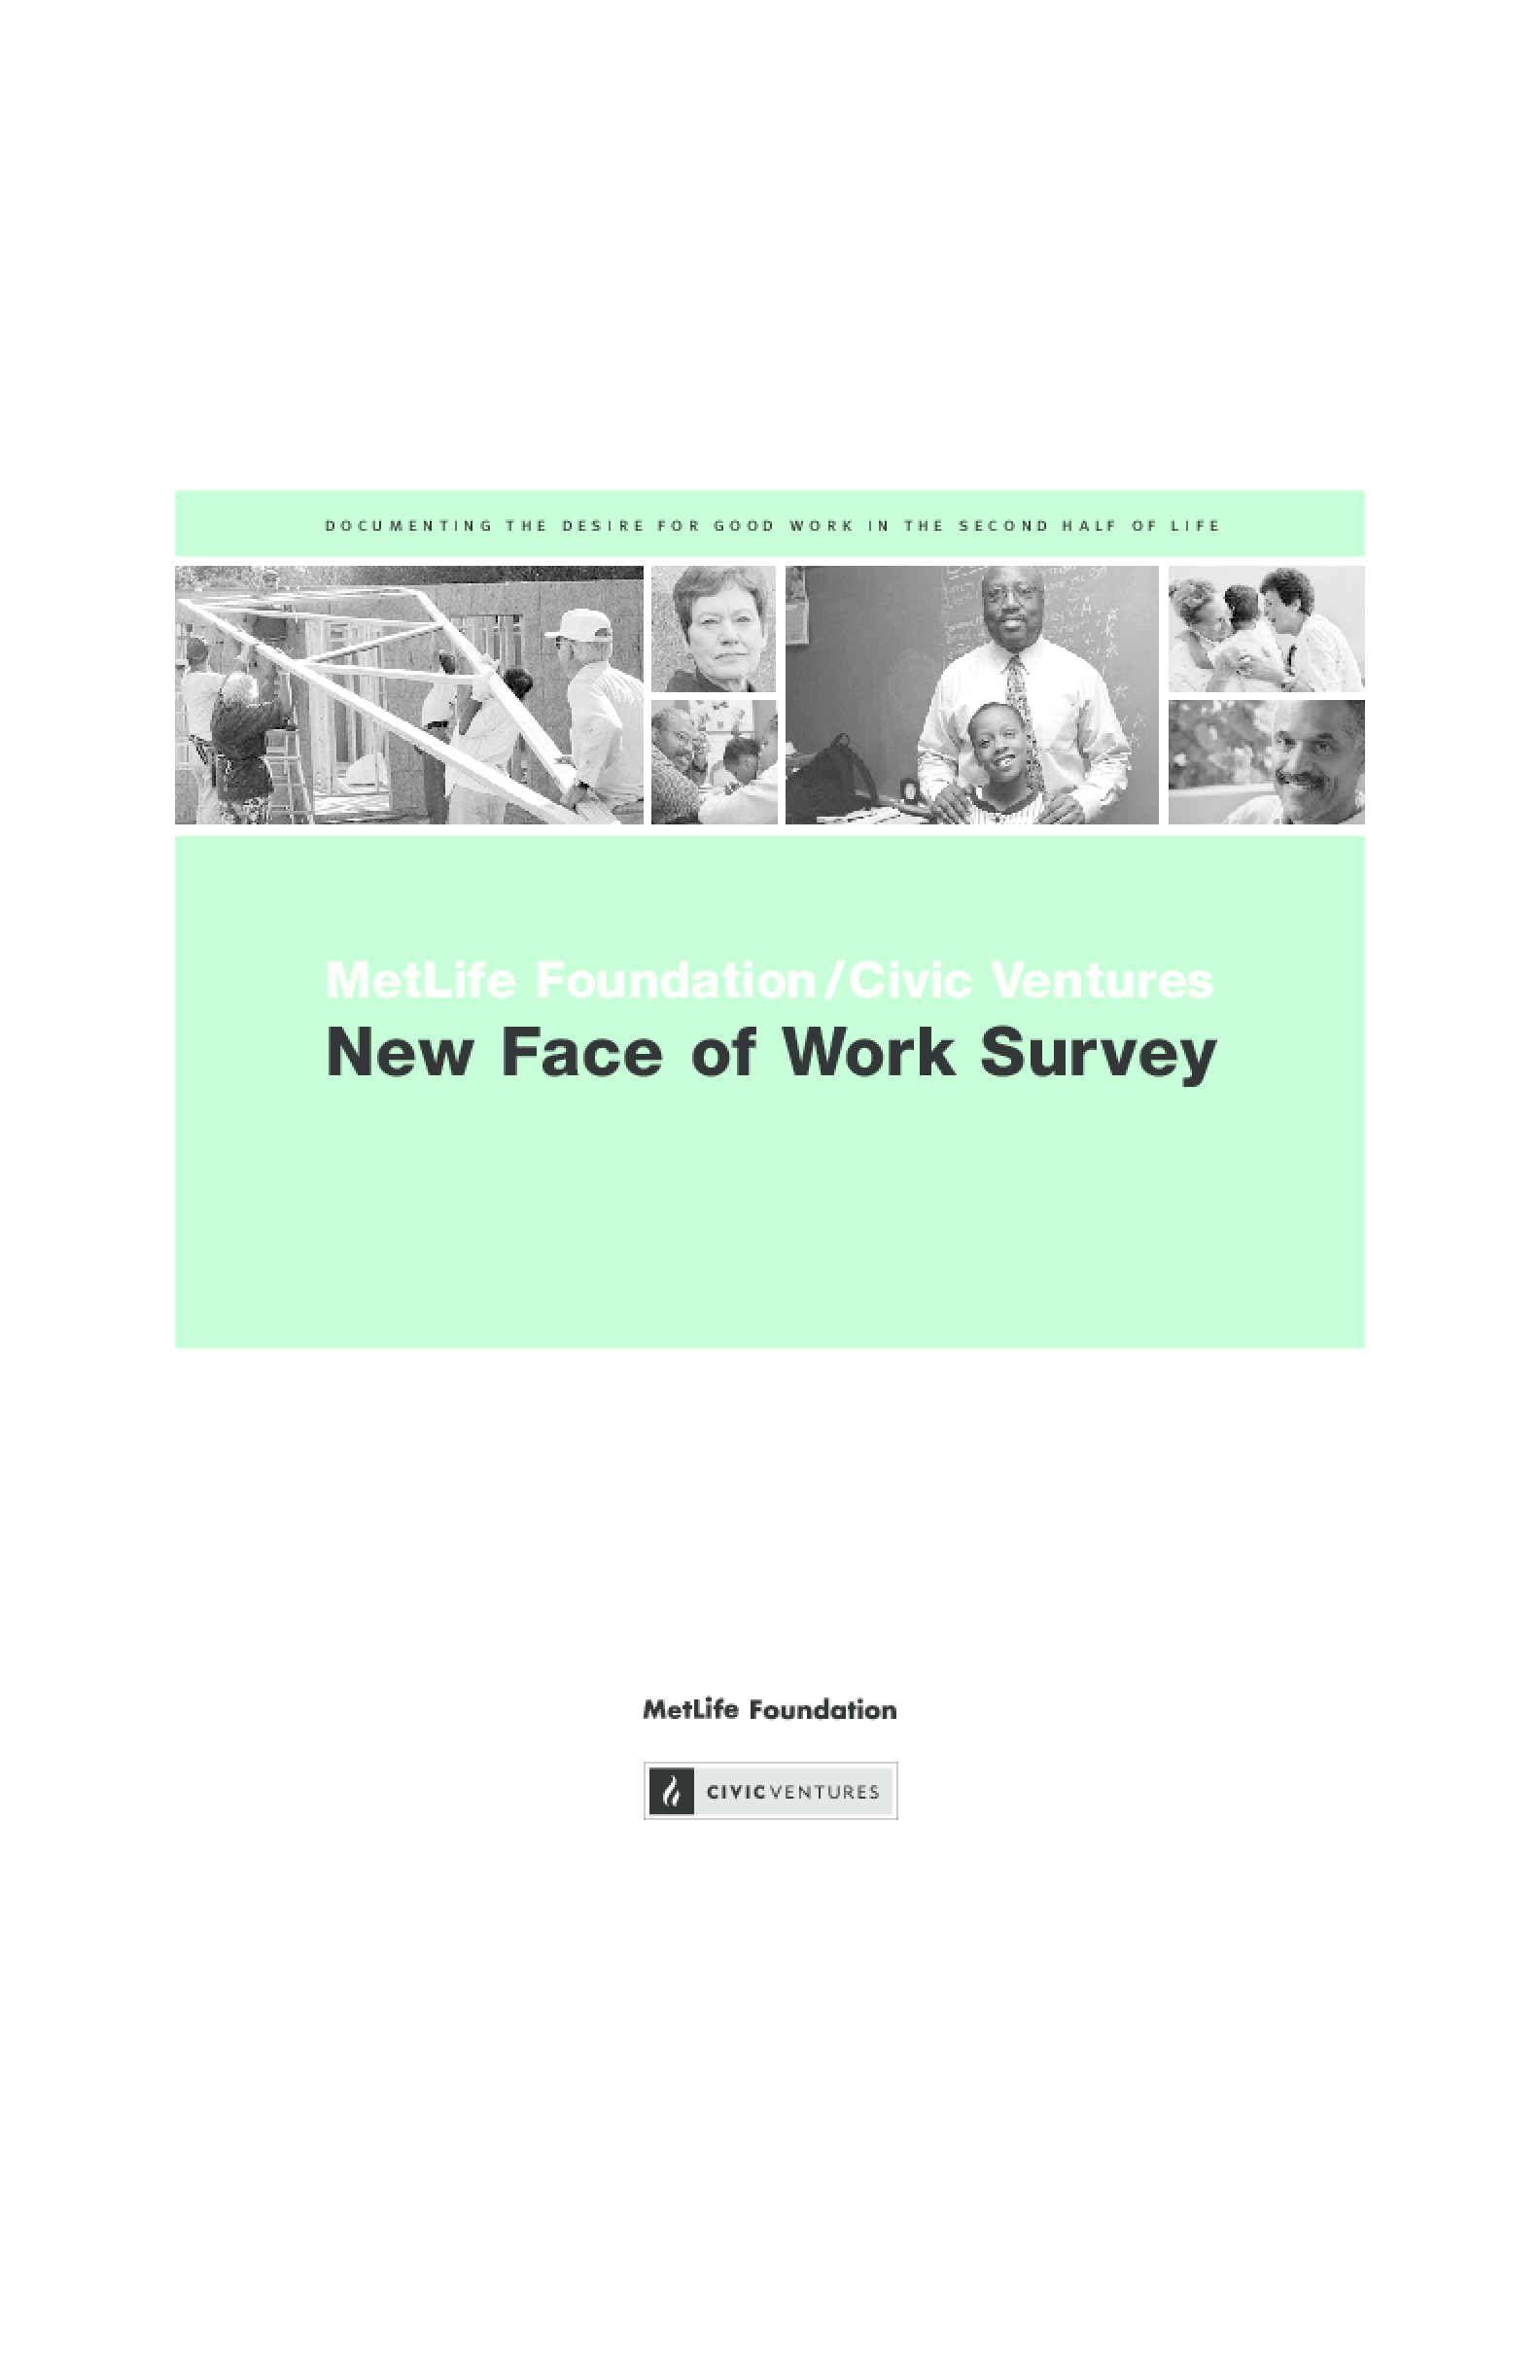 New Face of Work Survey